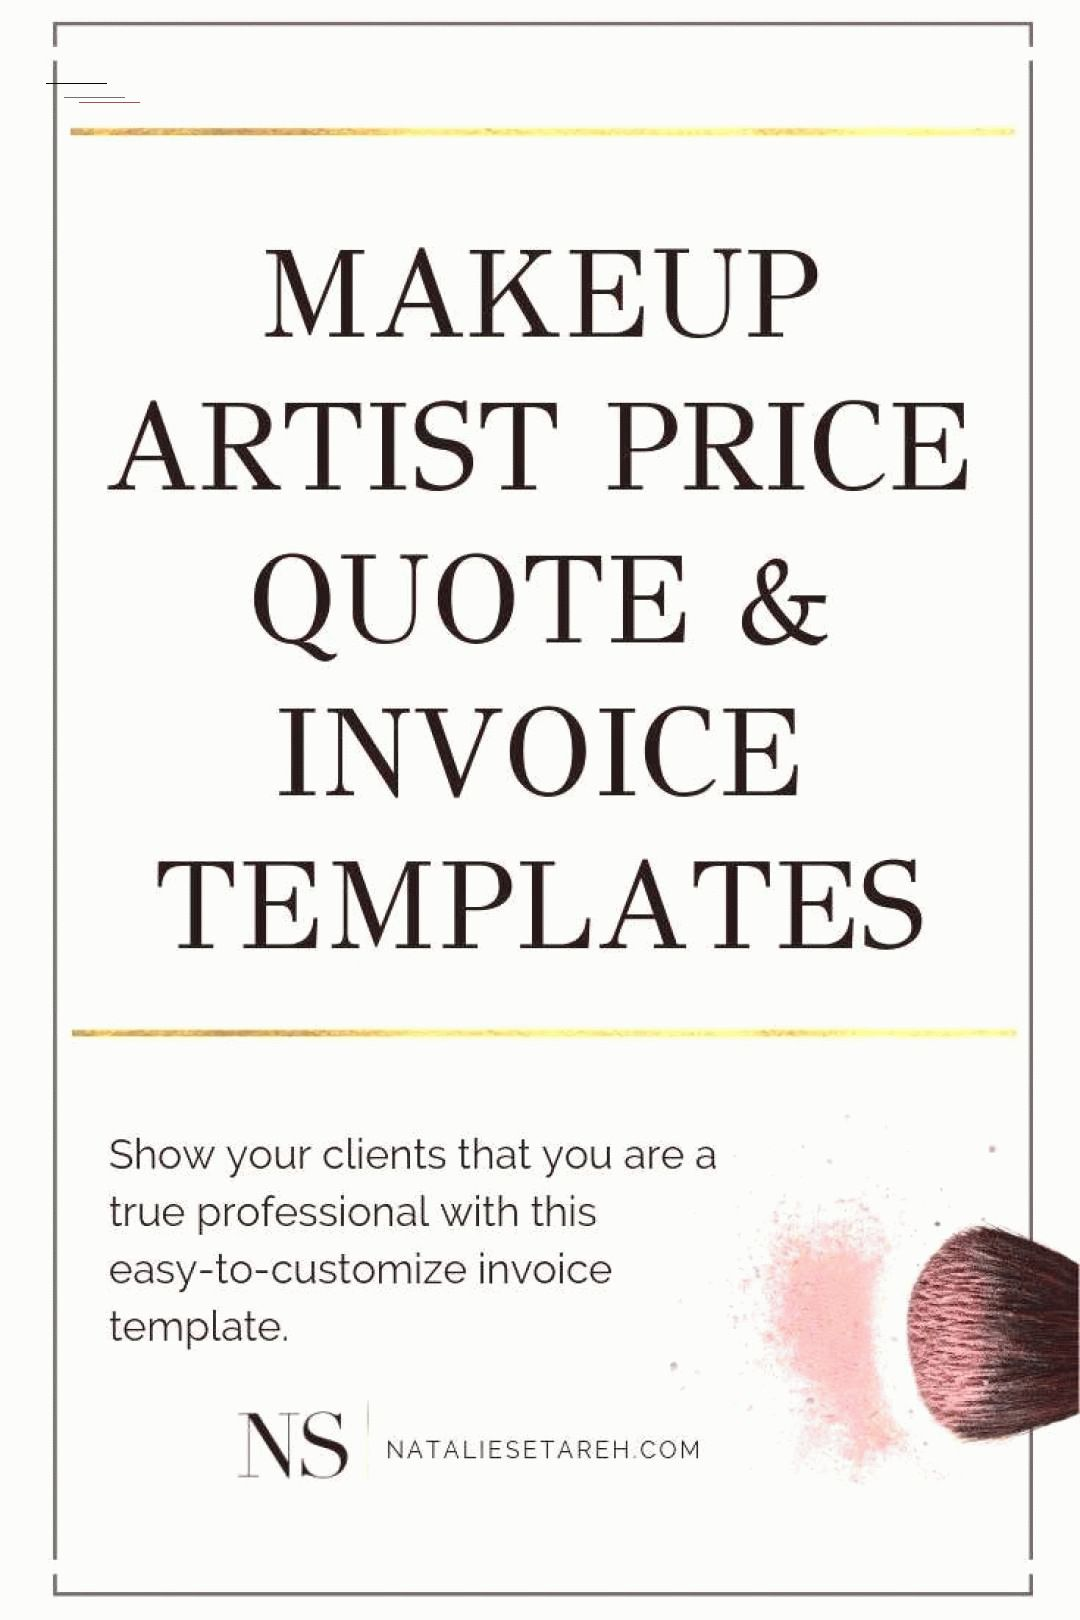 As a makeup artist you want to show your clients that you